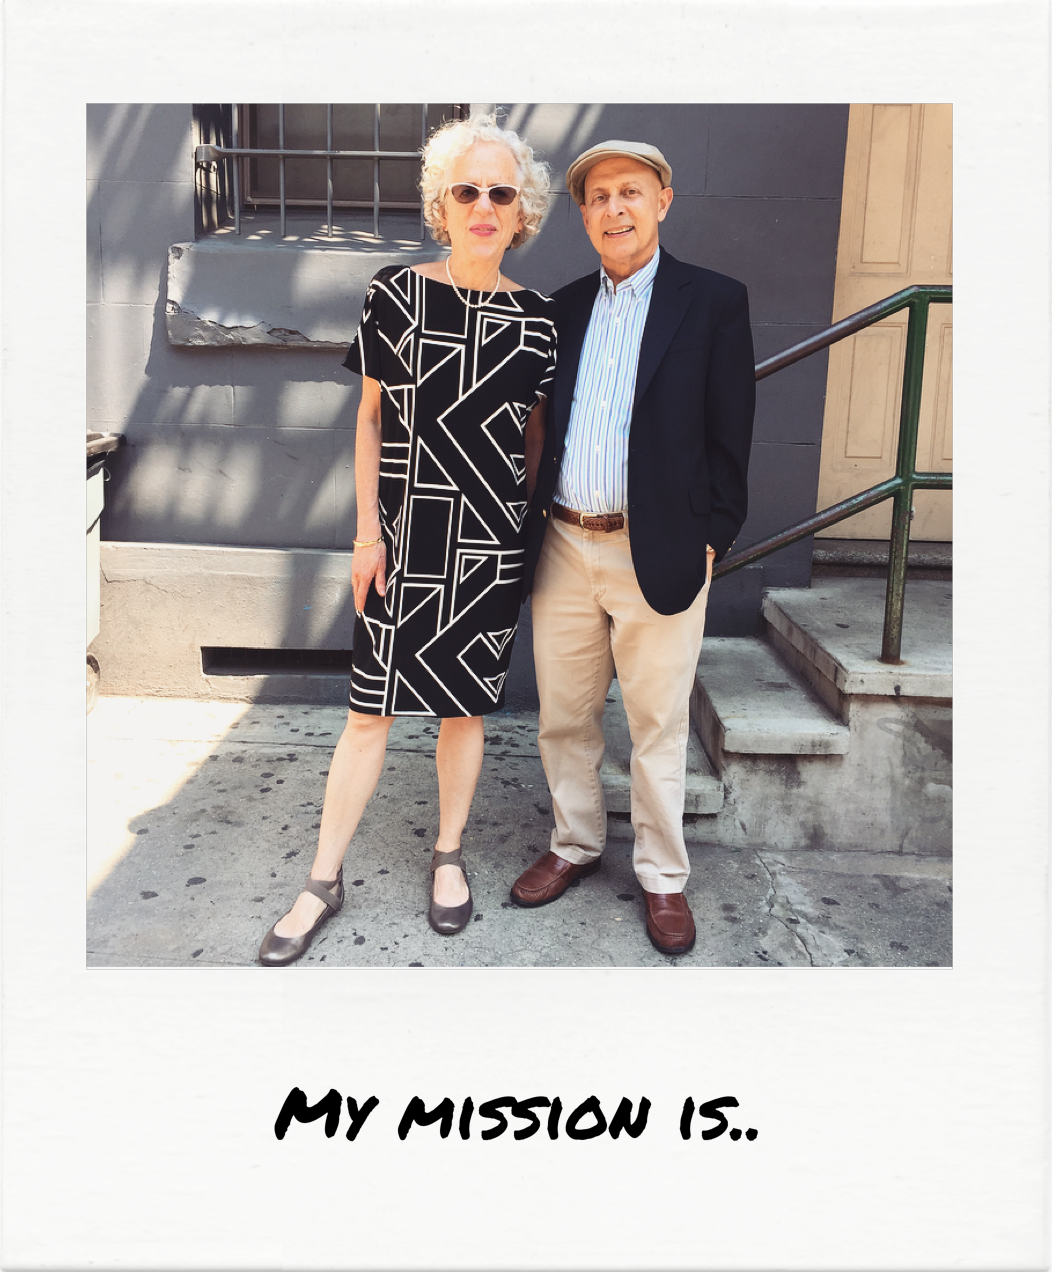 """Our mission is to leave the world in better shape than we found it."" -Suzanne and Mark Shapiro"